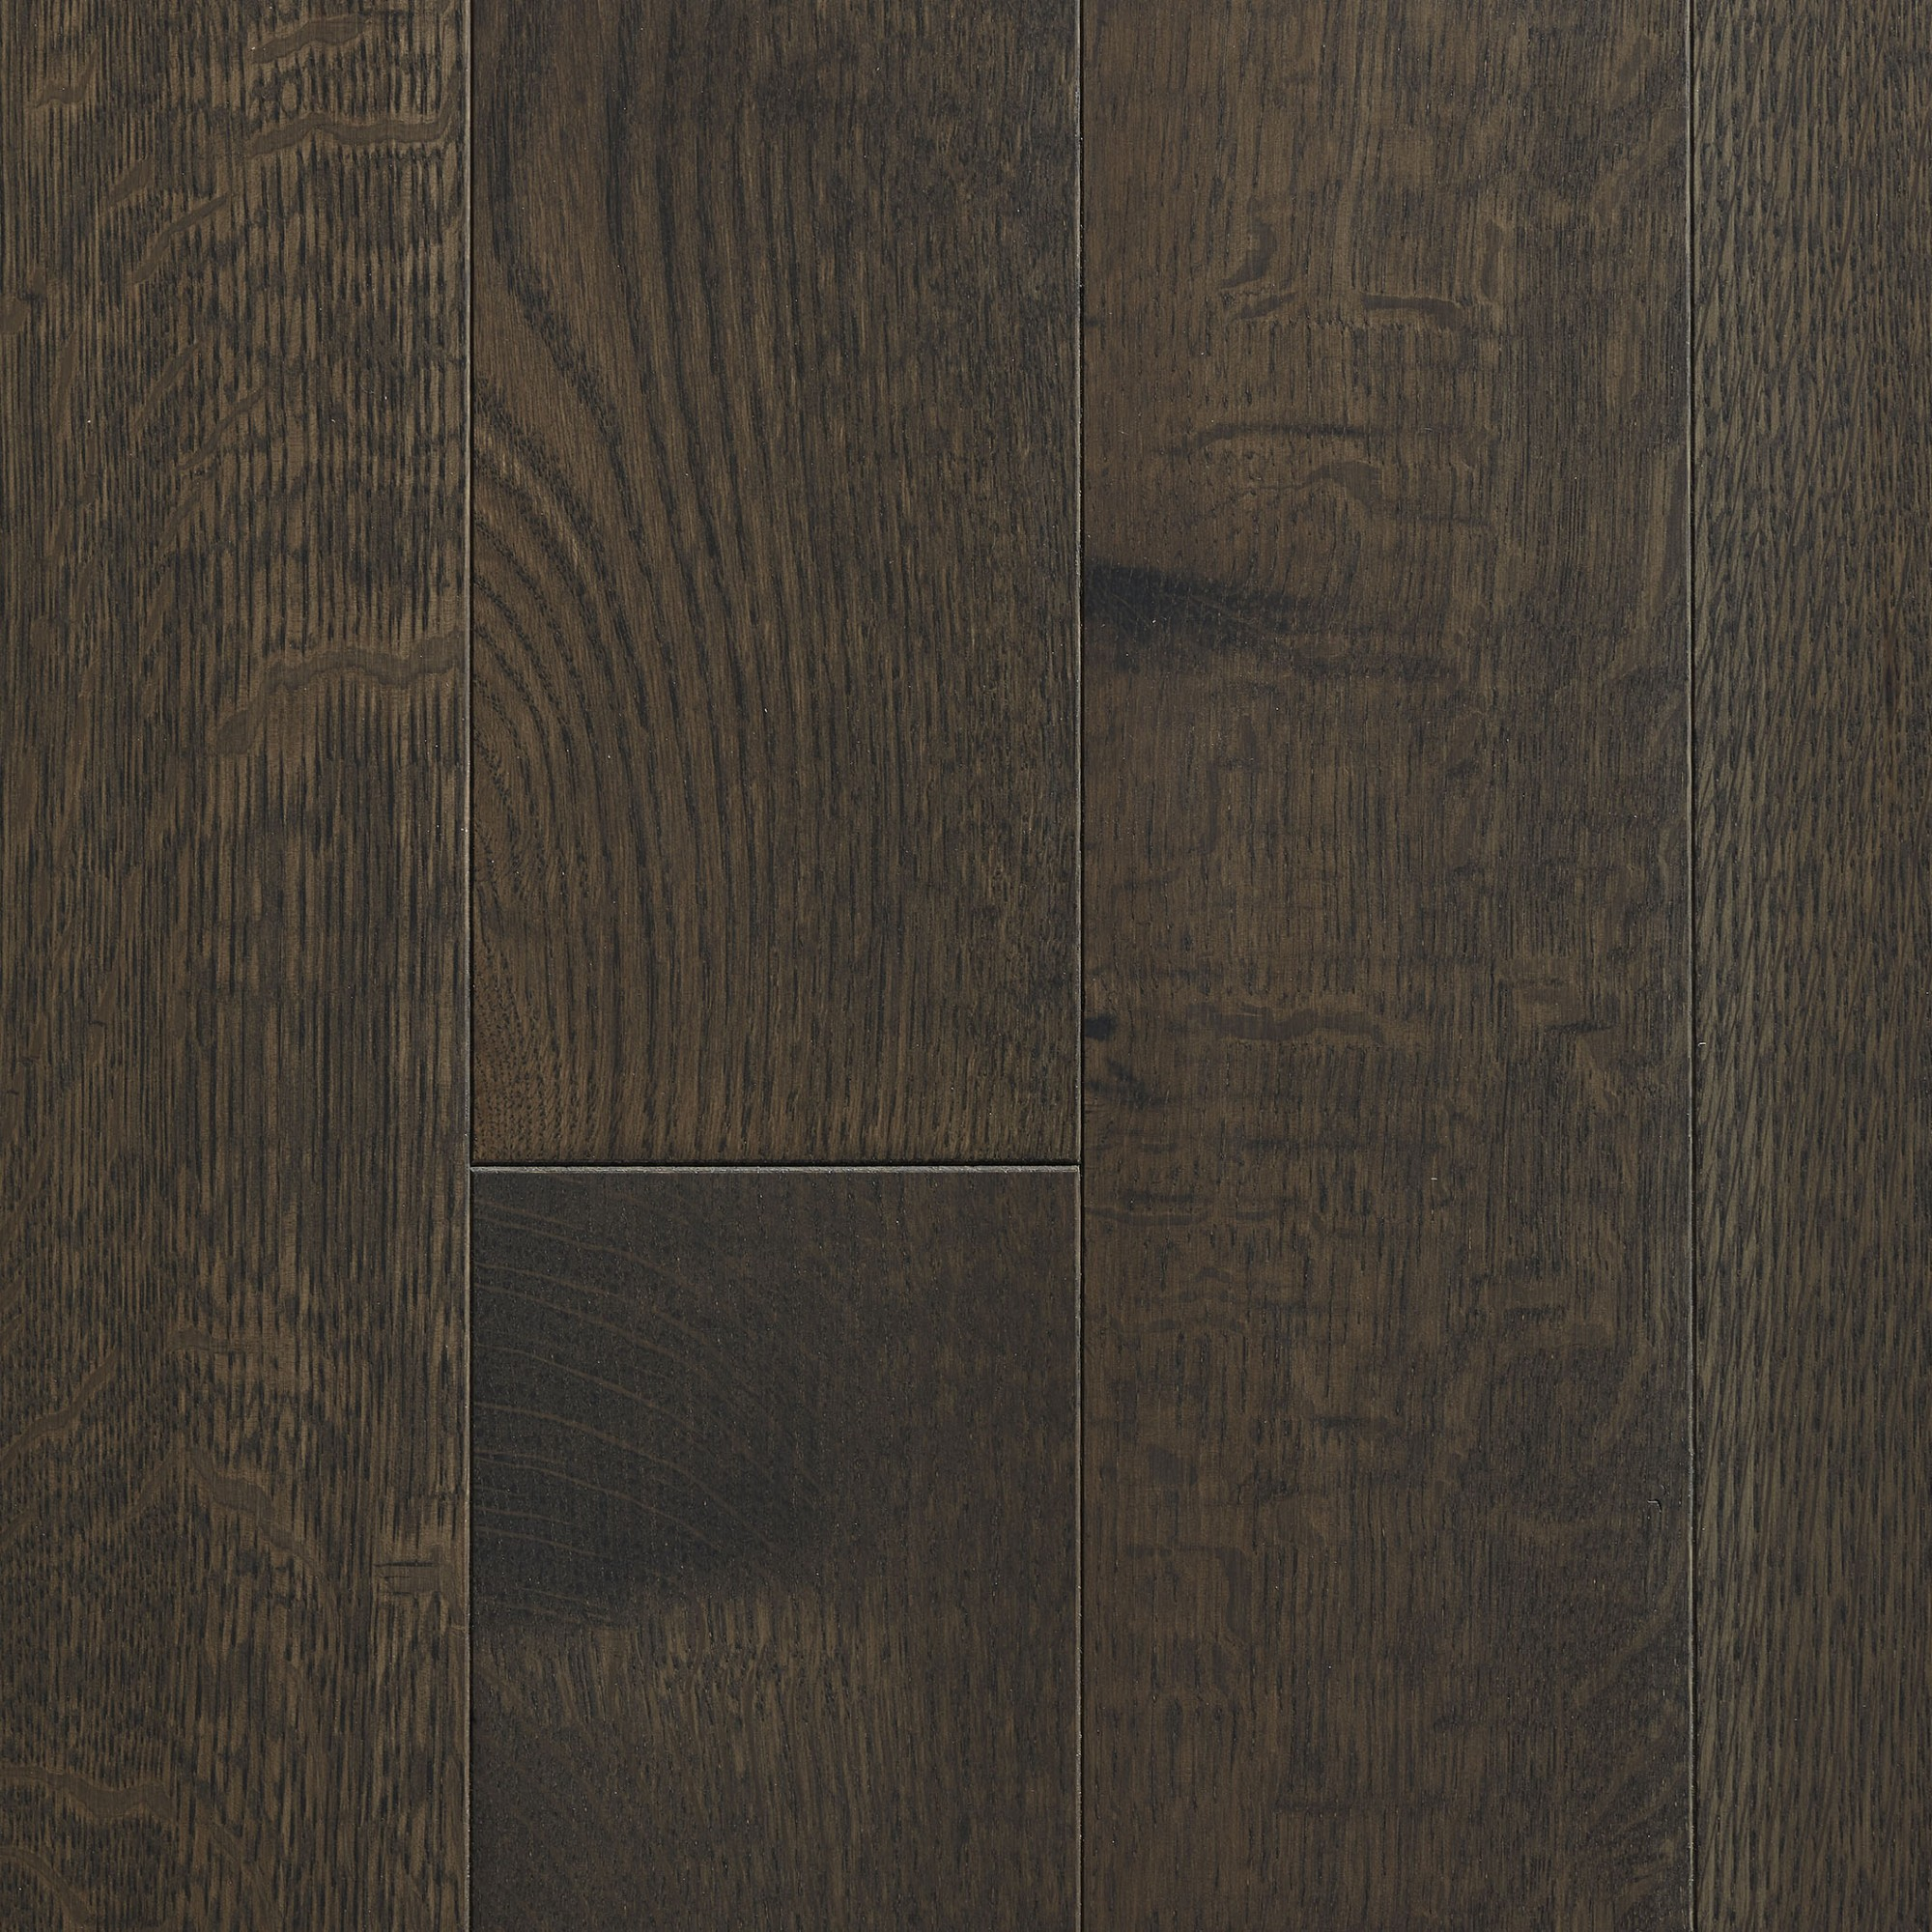 White Oak Gotham Smooth Rift & Quarter Sawn